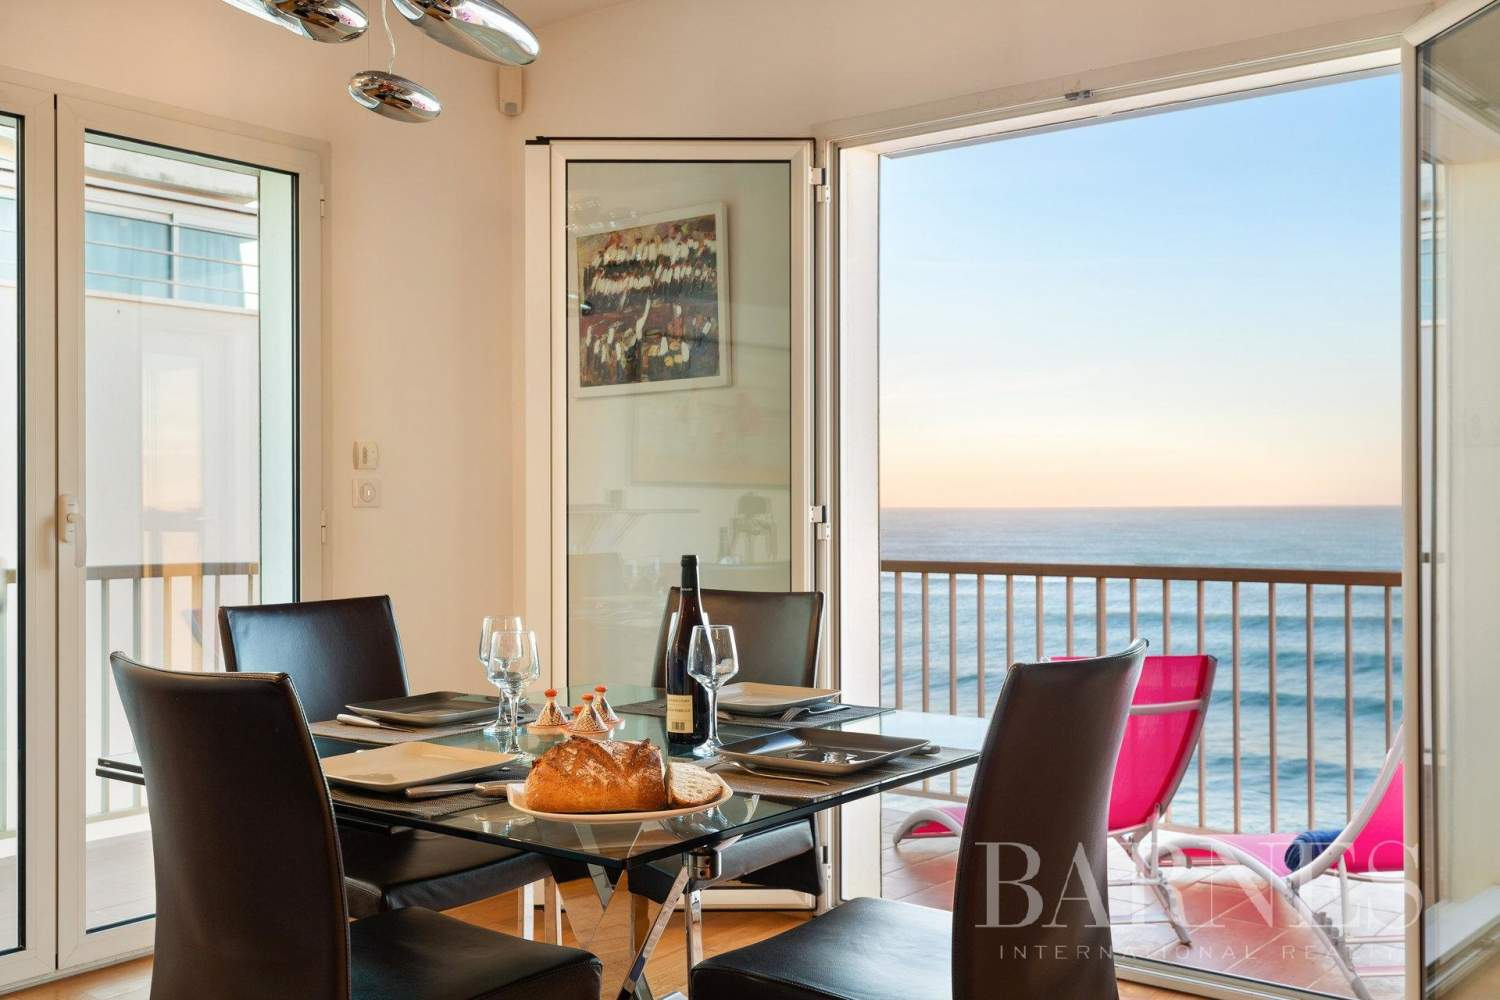 PANORAMA - IN THE HEART OF BIARRITZ RENOVATED APARTMENT WITH SEAVIEW FOR 4 PEOPLE picture 7